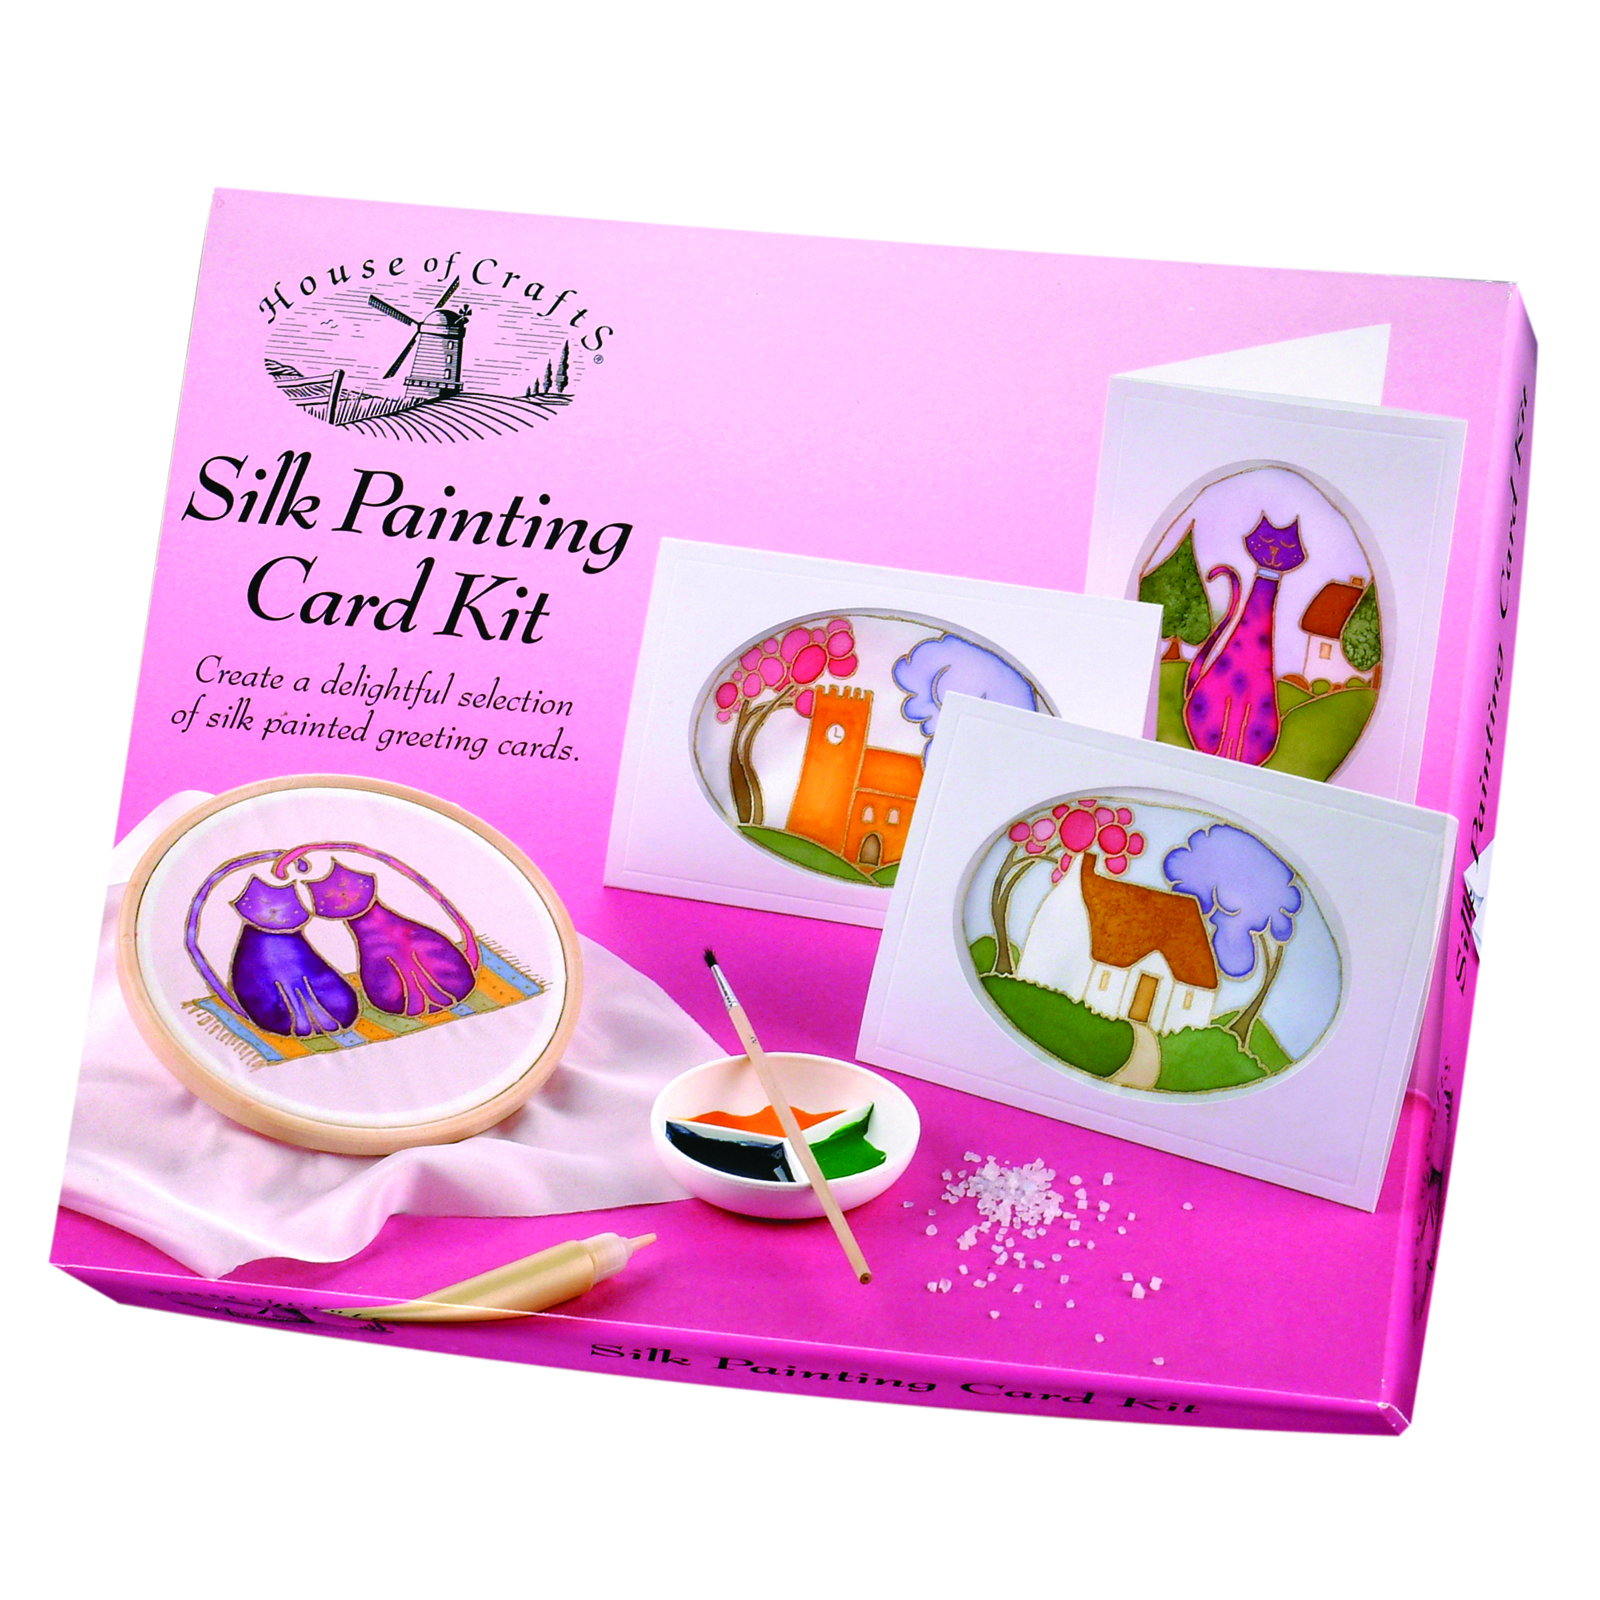 HOUSE OF CRAFTS SILK PAINTING KIT